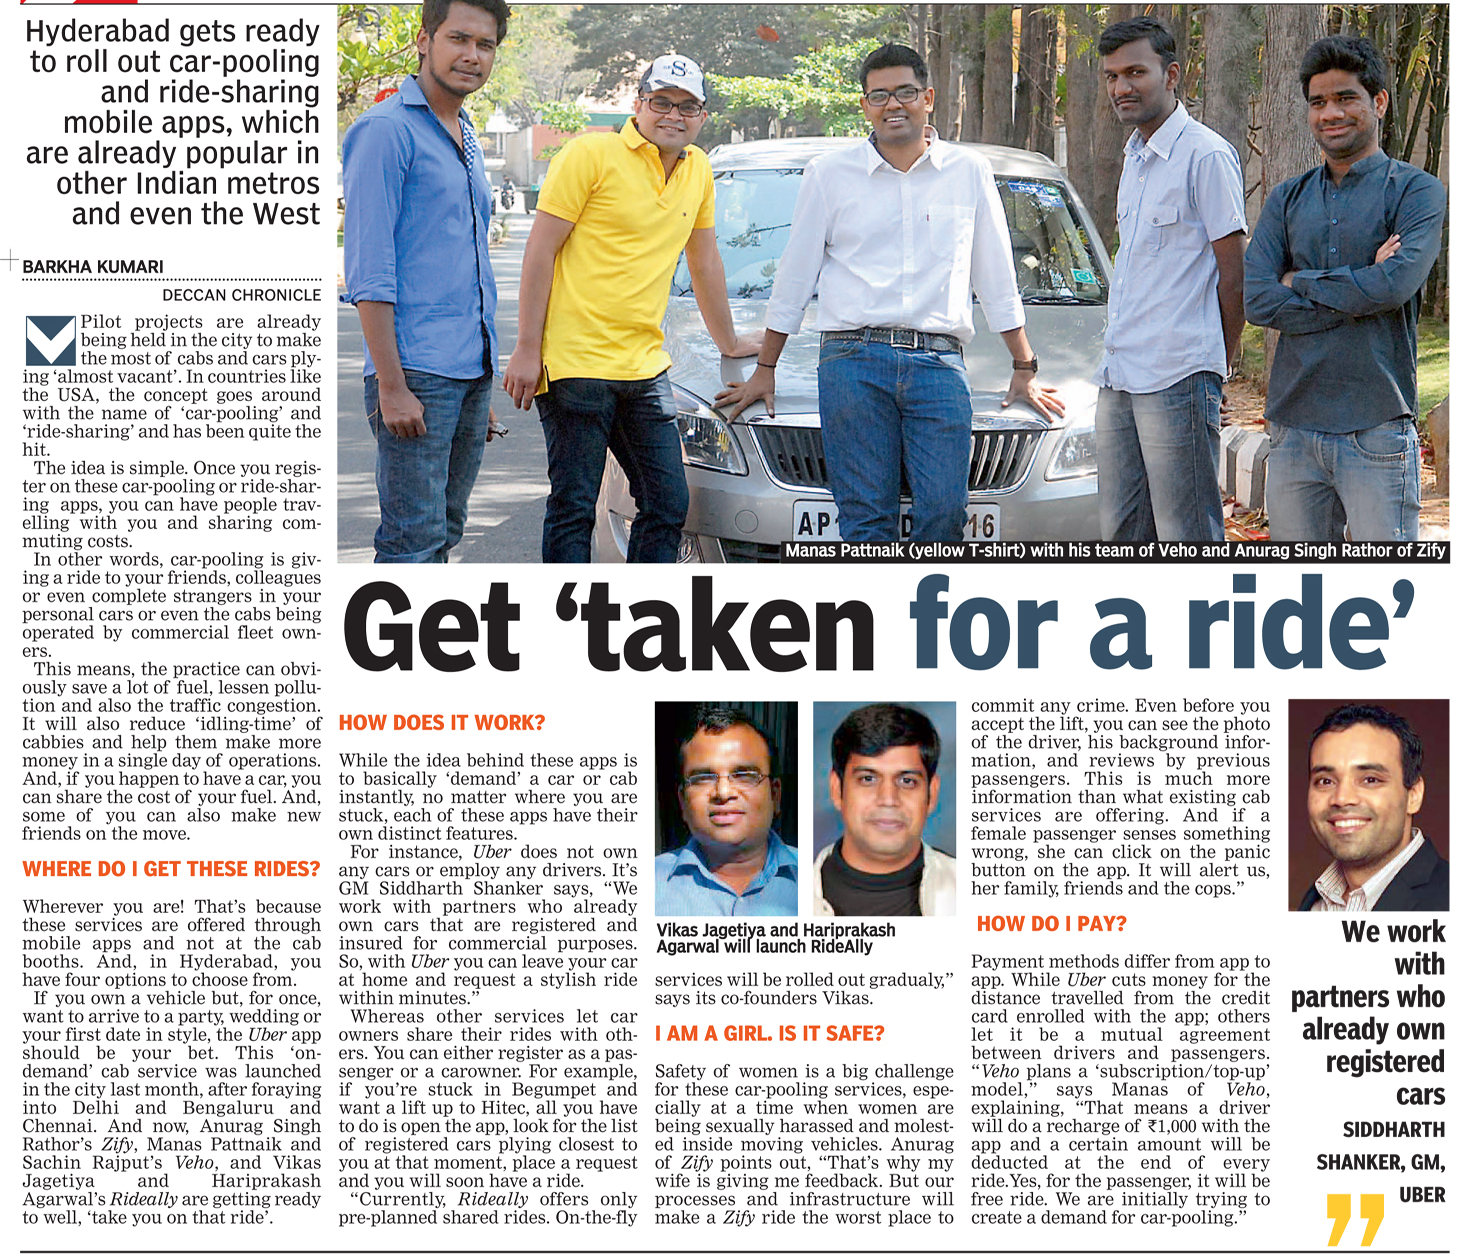 //www.rideally.com/static/images/Deccan_Chronicle_RideAlly_20140211.png